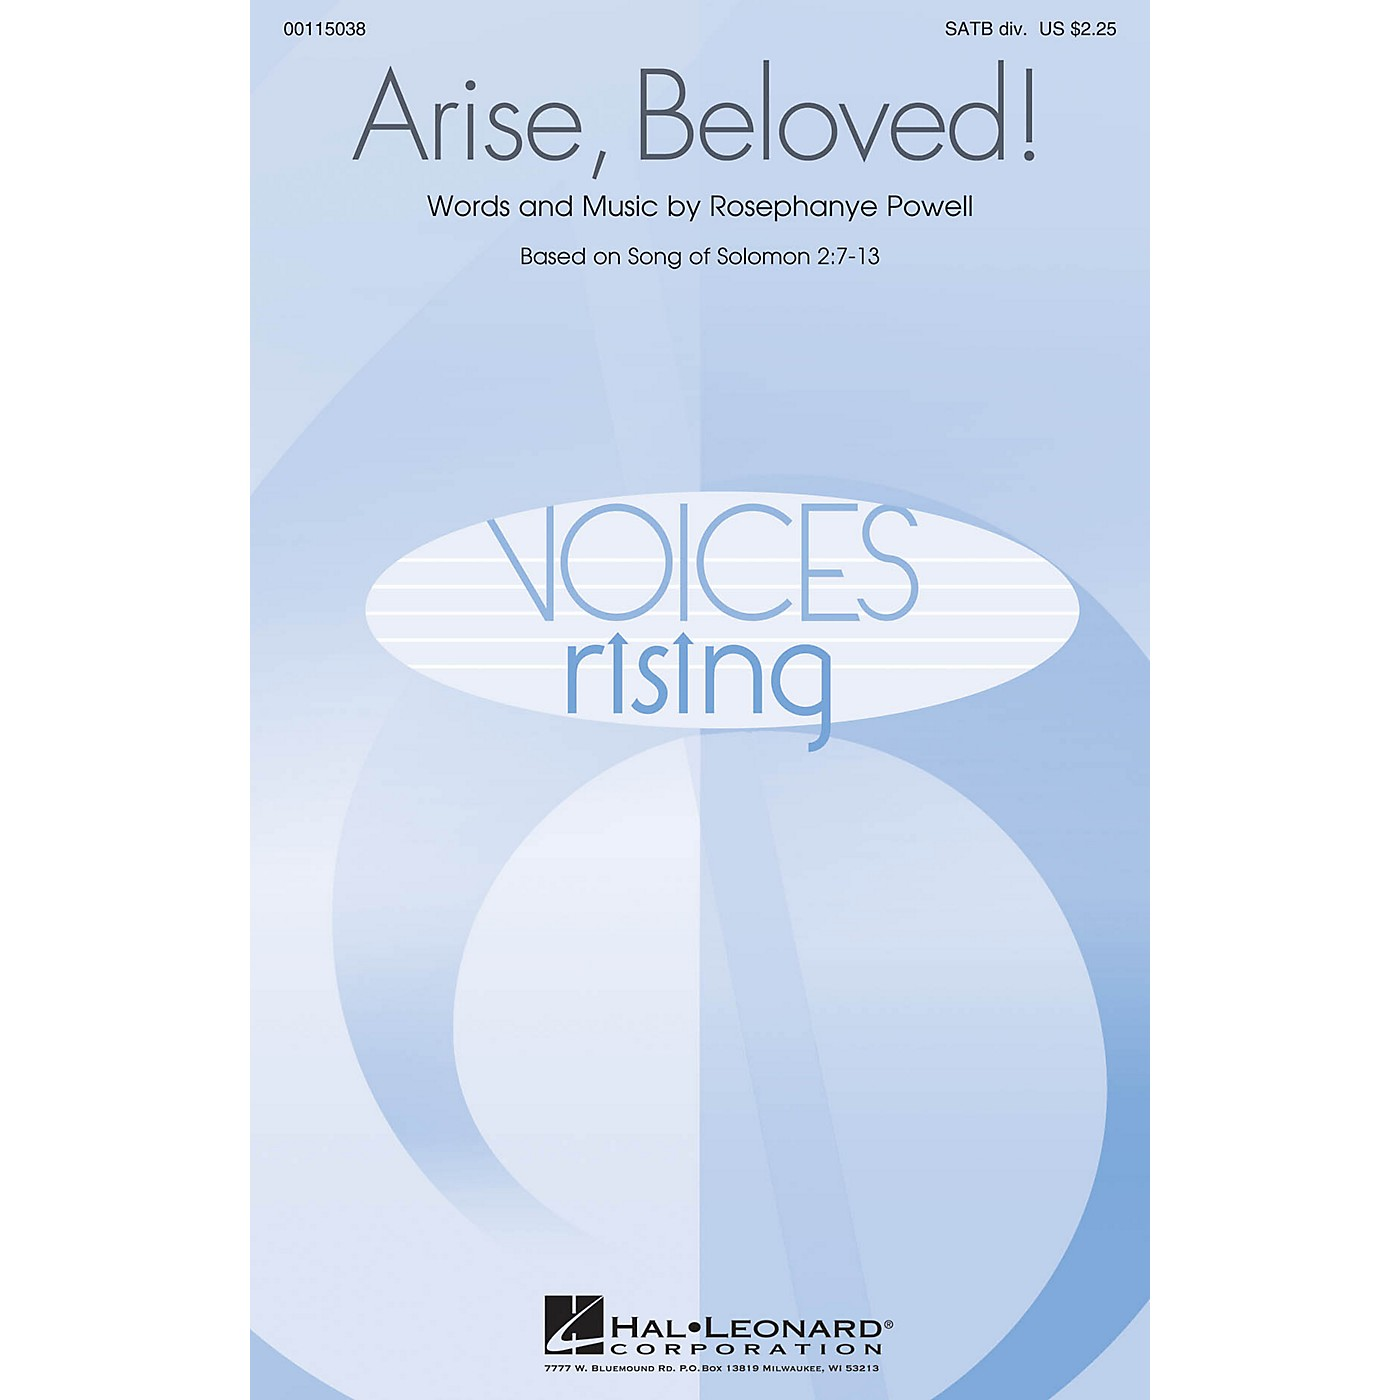 Hal Leonard Arise, Beloved! SATB Divisi composed by Rosephanye Powell thumbnail